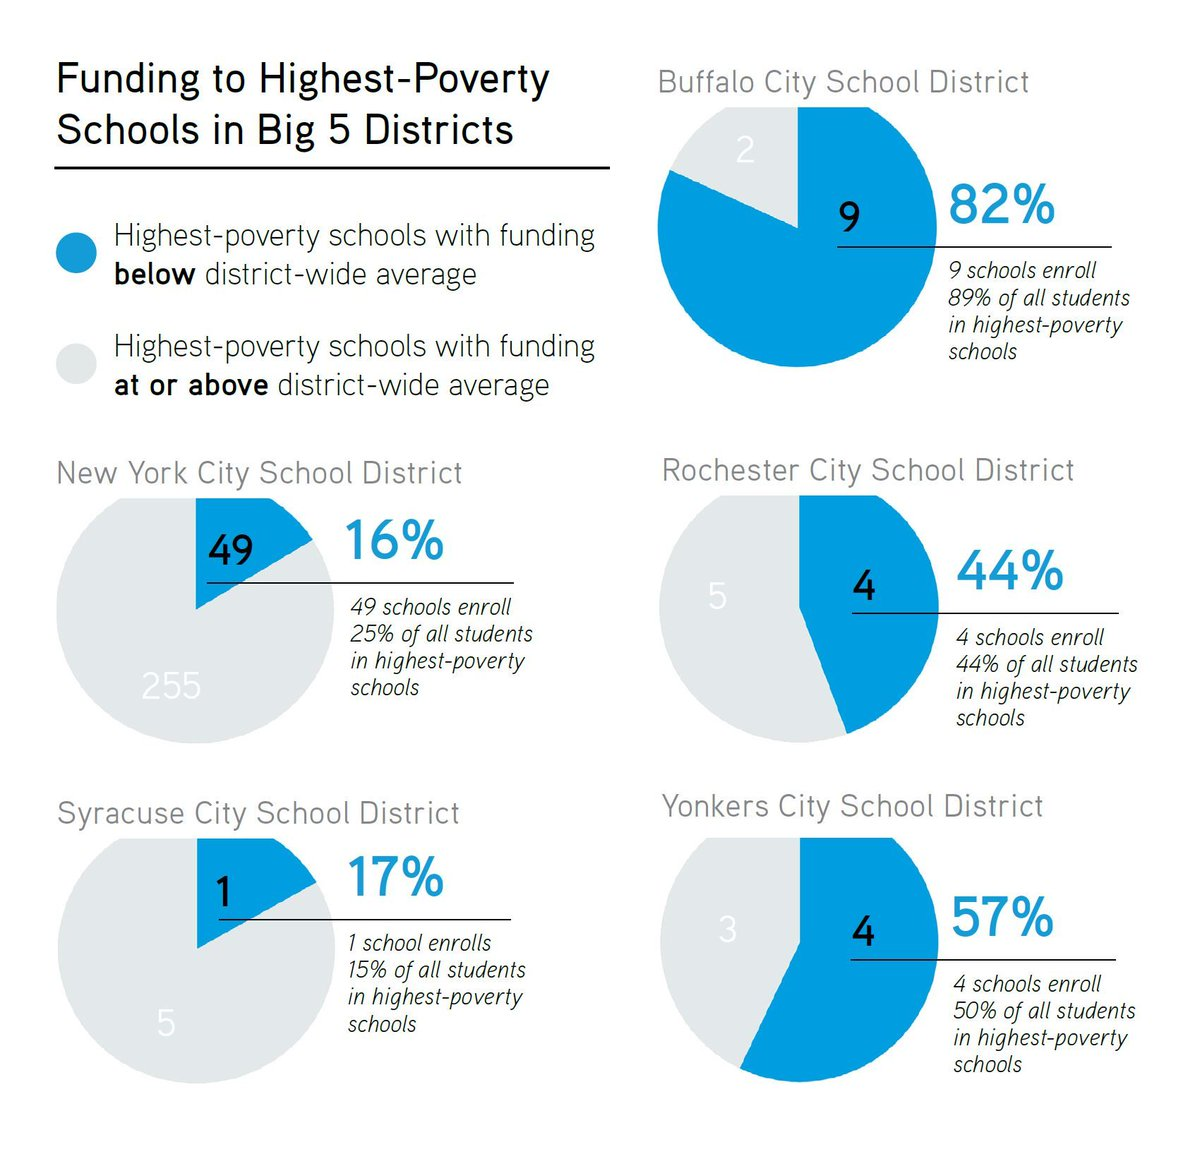 Newly available school-level spending data illuminate how education aid flows not just among districts, but among schools within districts. For New York's Big 5 districts, we find that many of the highest-poverty schools get less than the district average. https://t.co/kt6e9sIwuC